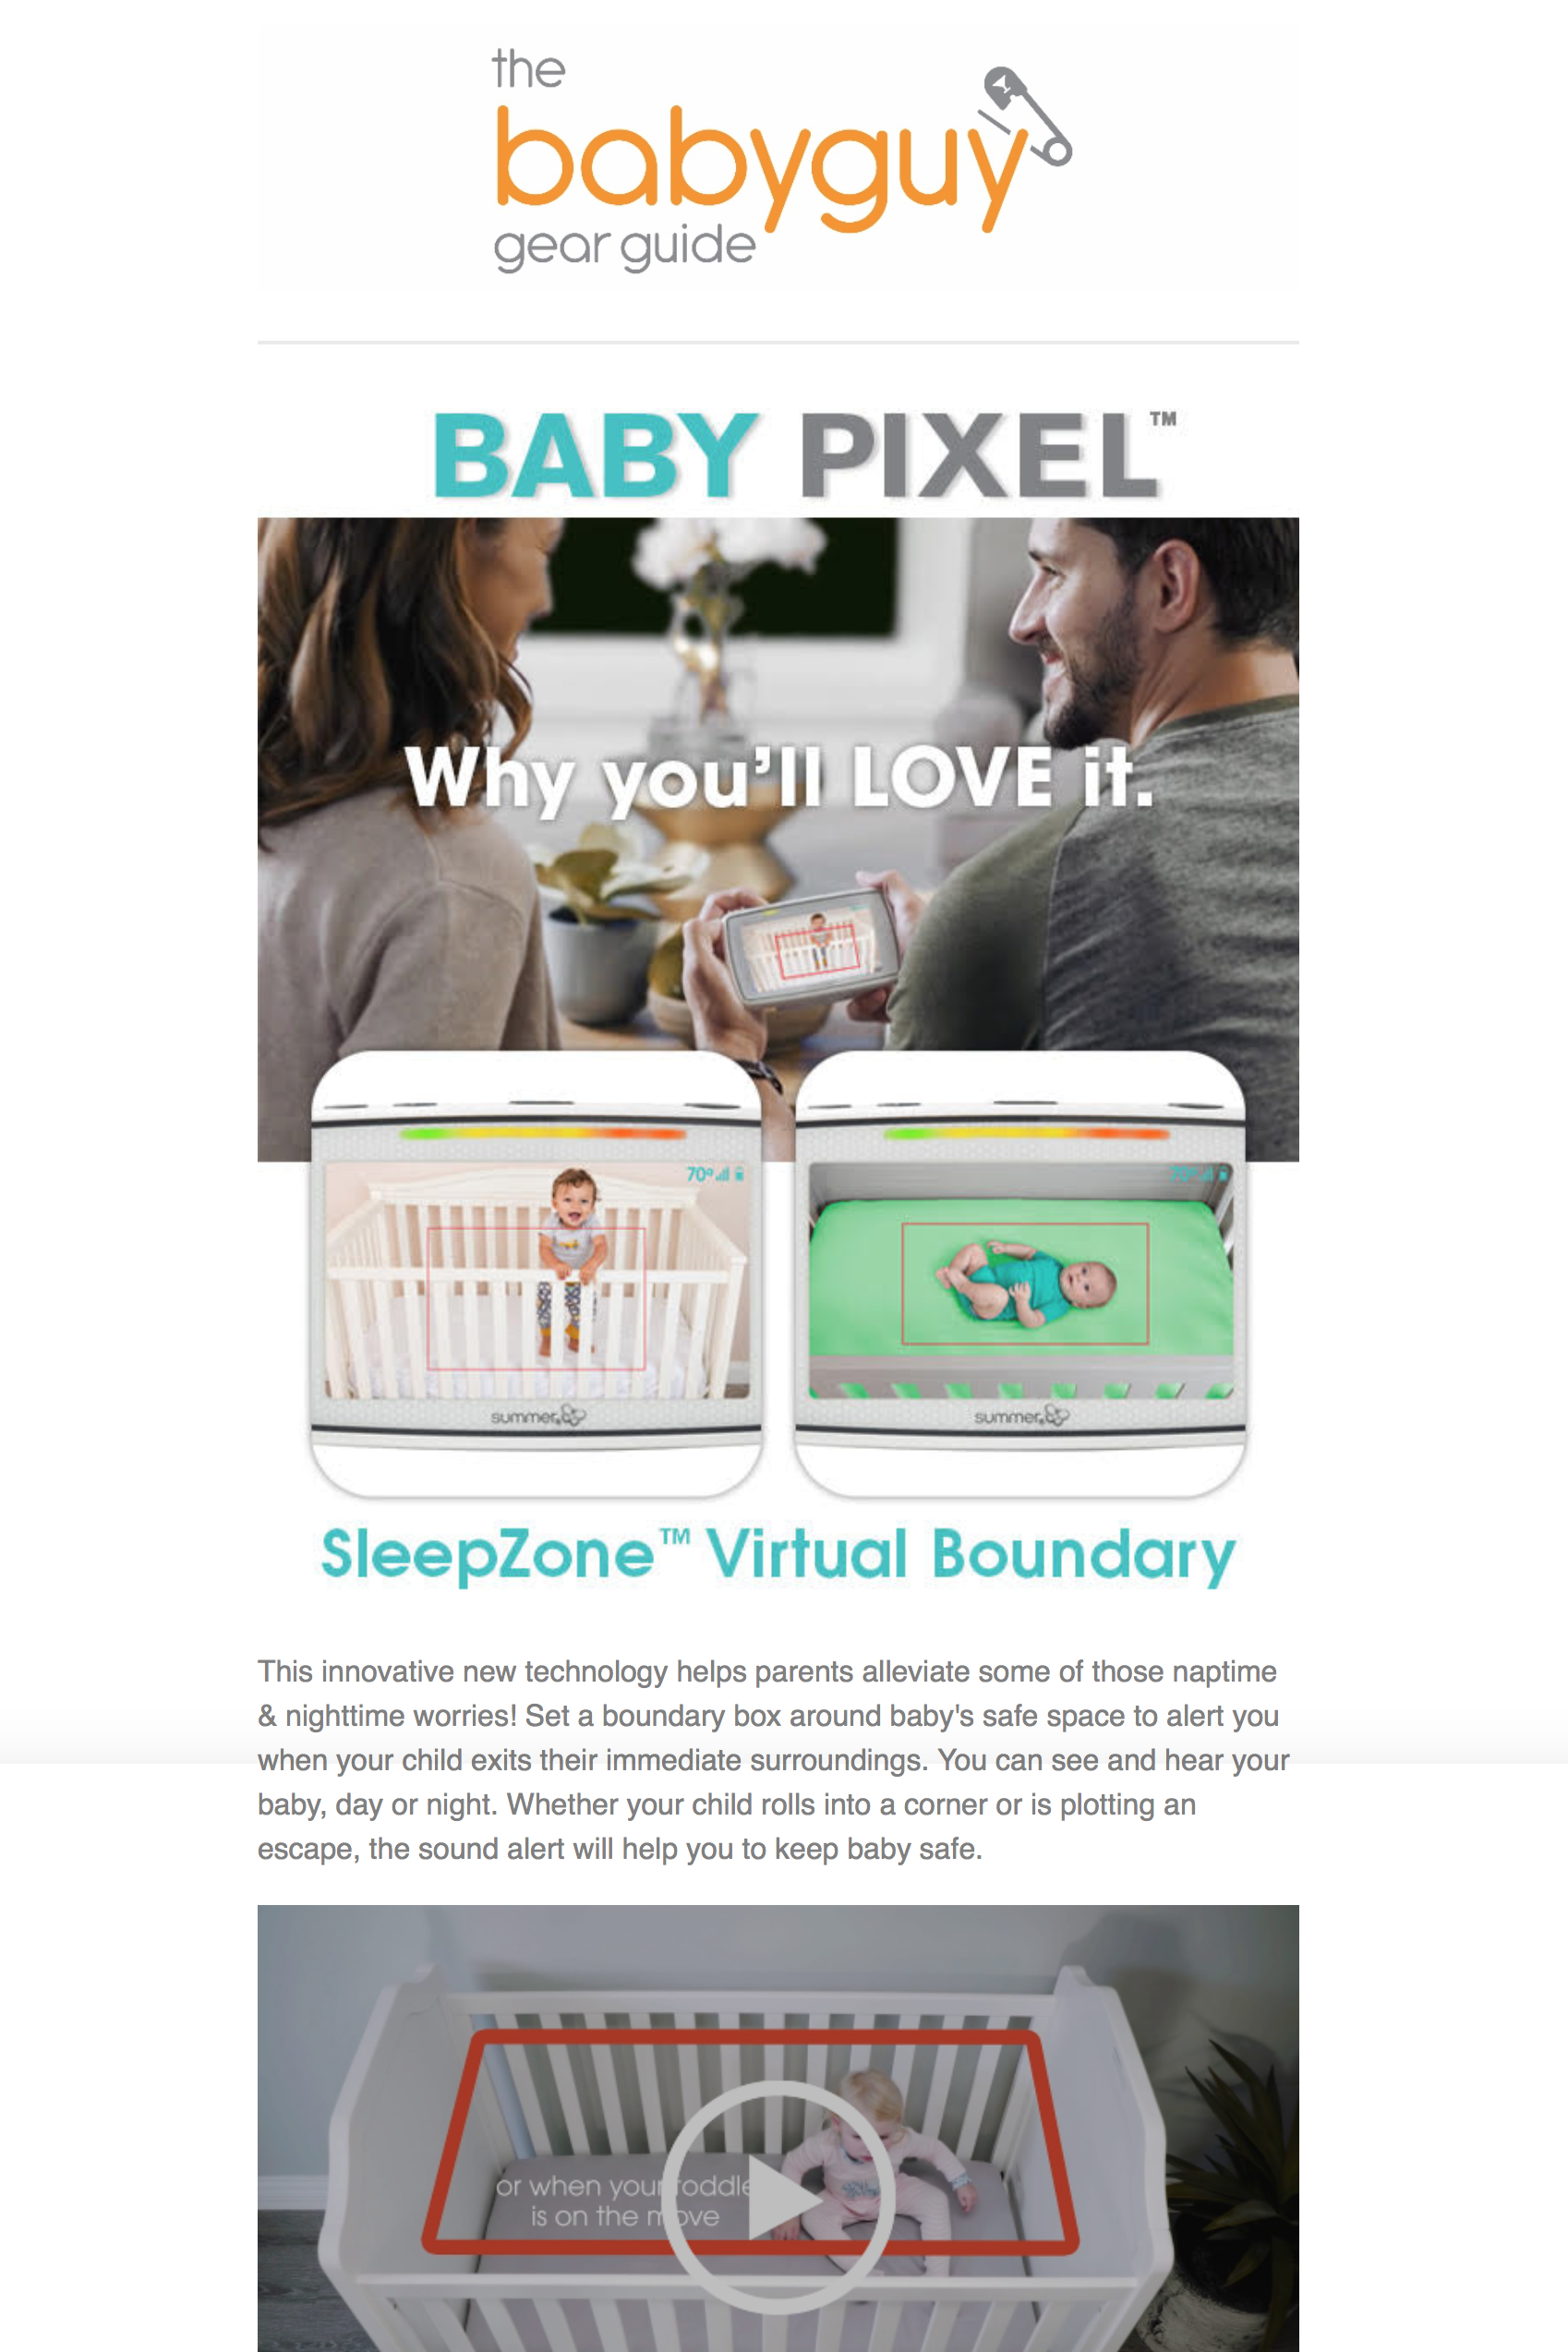 2018.02.15_(The Baby Guy Gear Guide) Email Blast_Summer Infant Baby Pixel Monitor_cropped 2x3.png